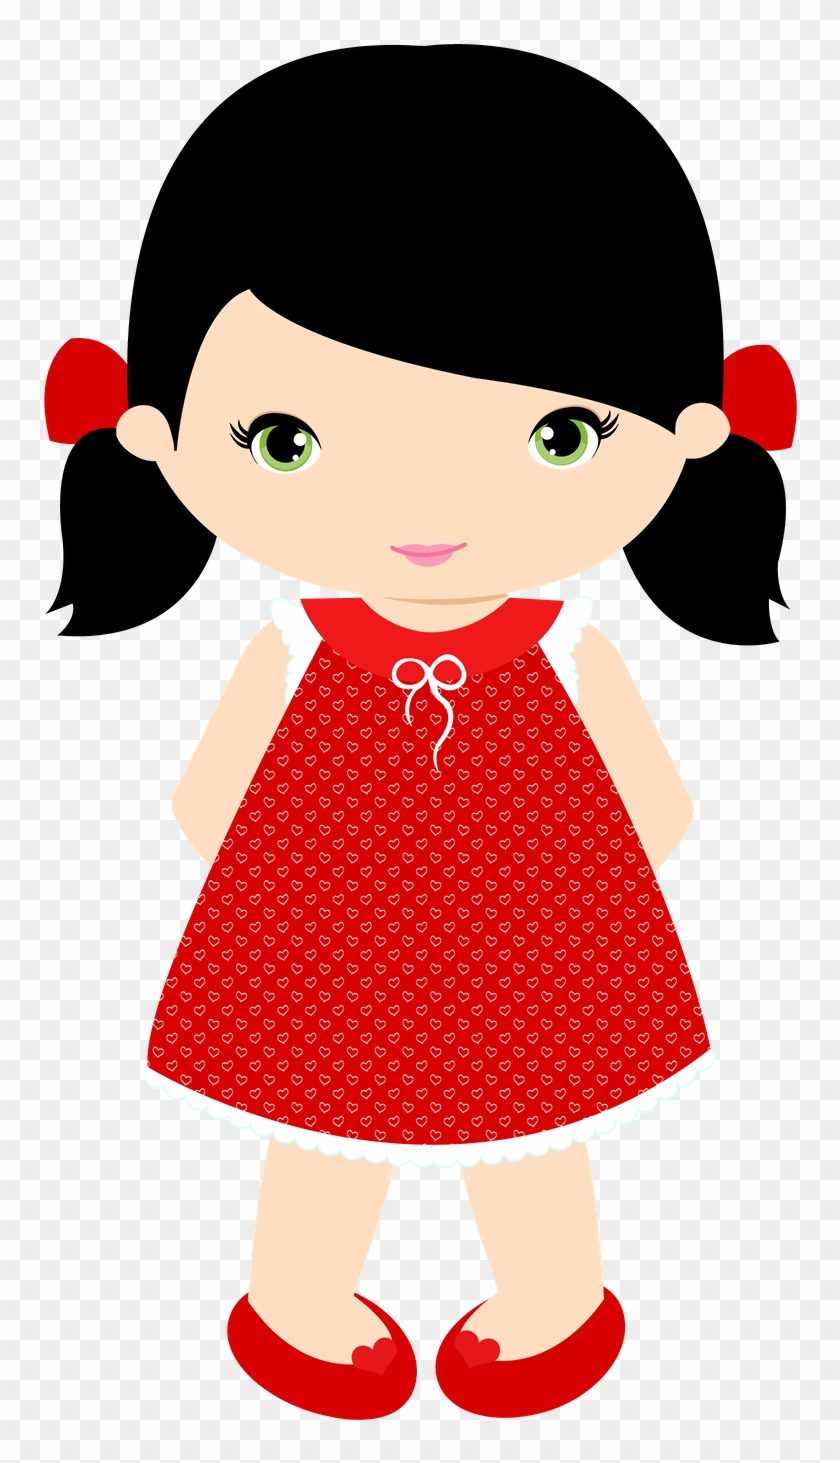 Preview - Minus - Clipart Little Girl #108989